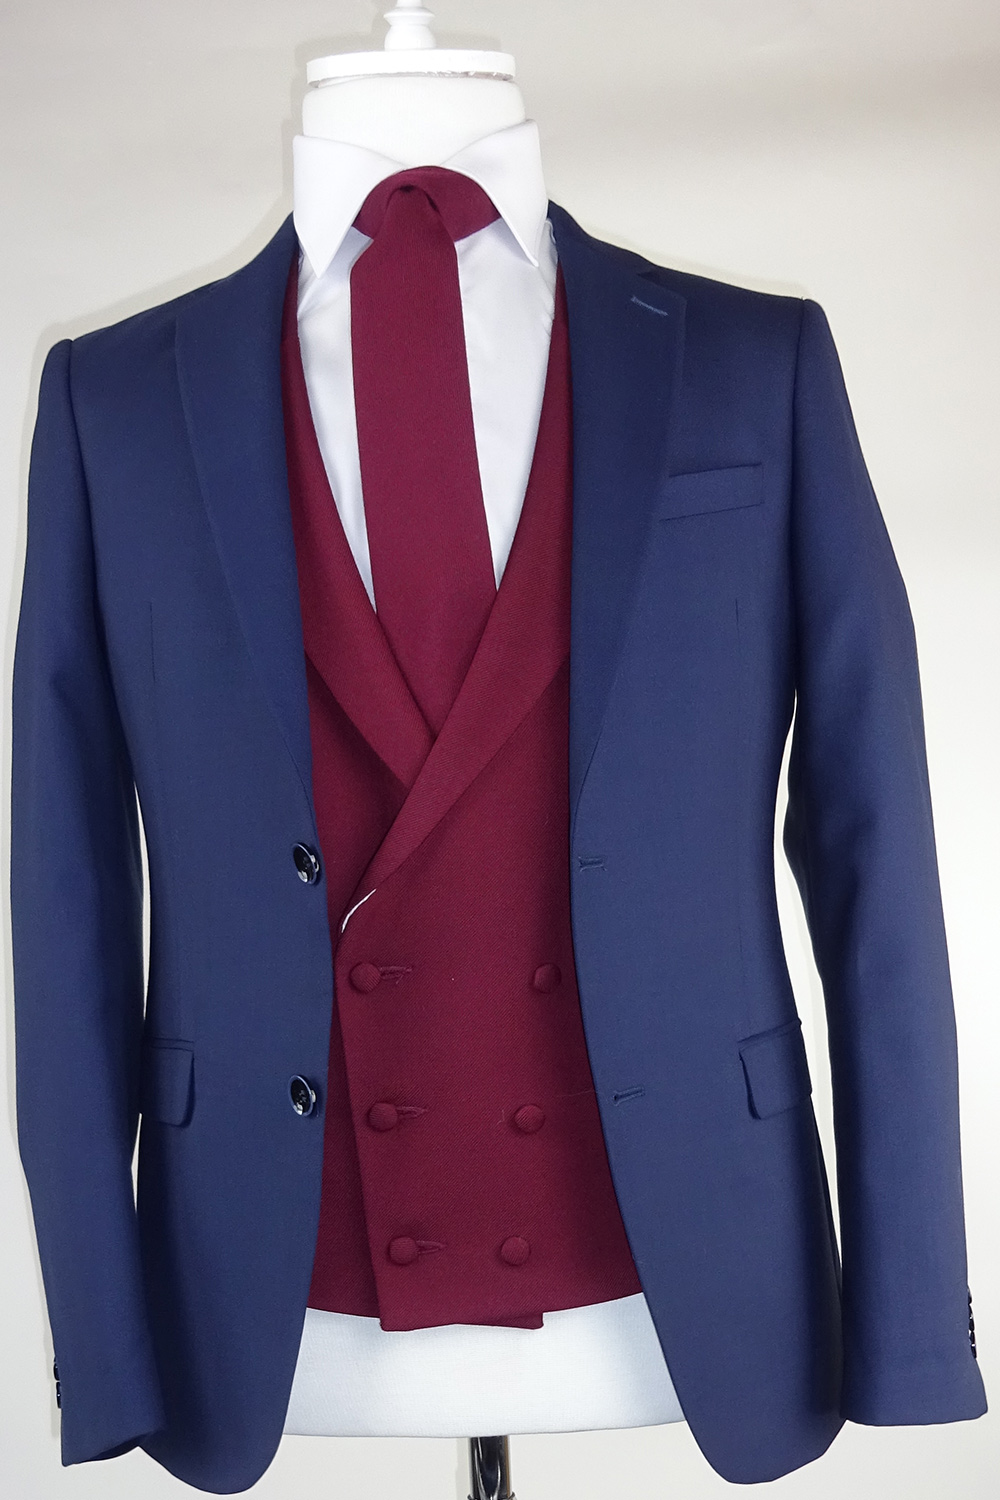 Navy Suit Ascott Wine Double breasted Waistcoat